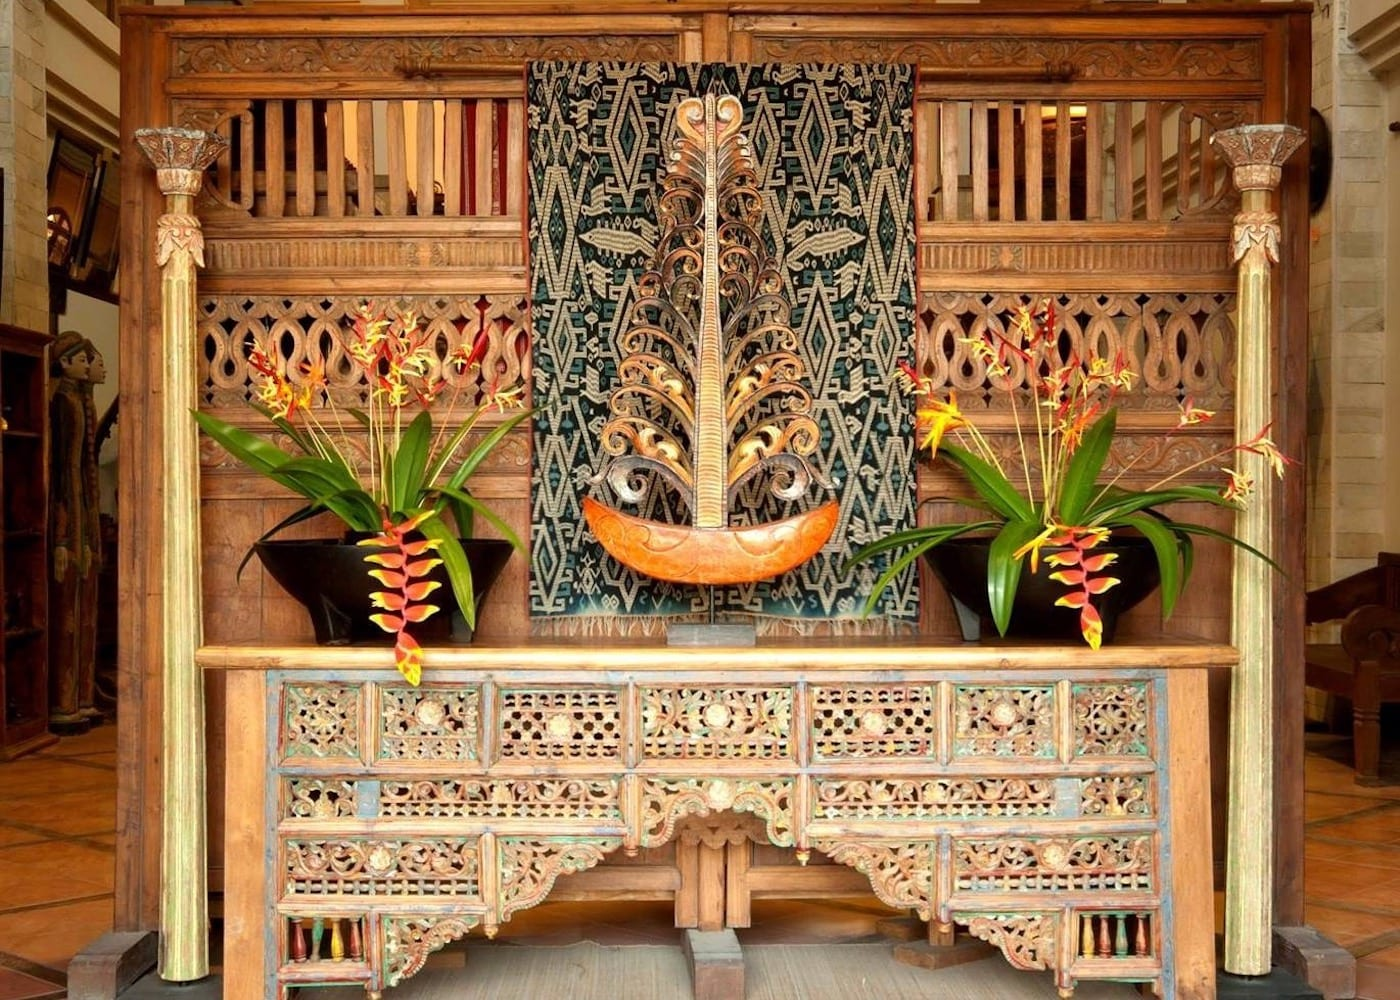 Ikat Gallery & Furniture Store in Bali, Indonesia